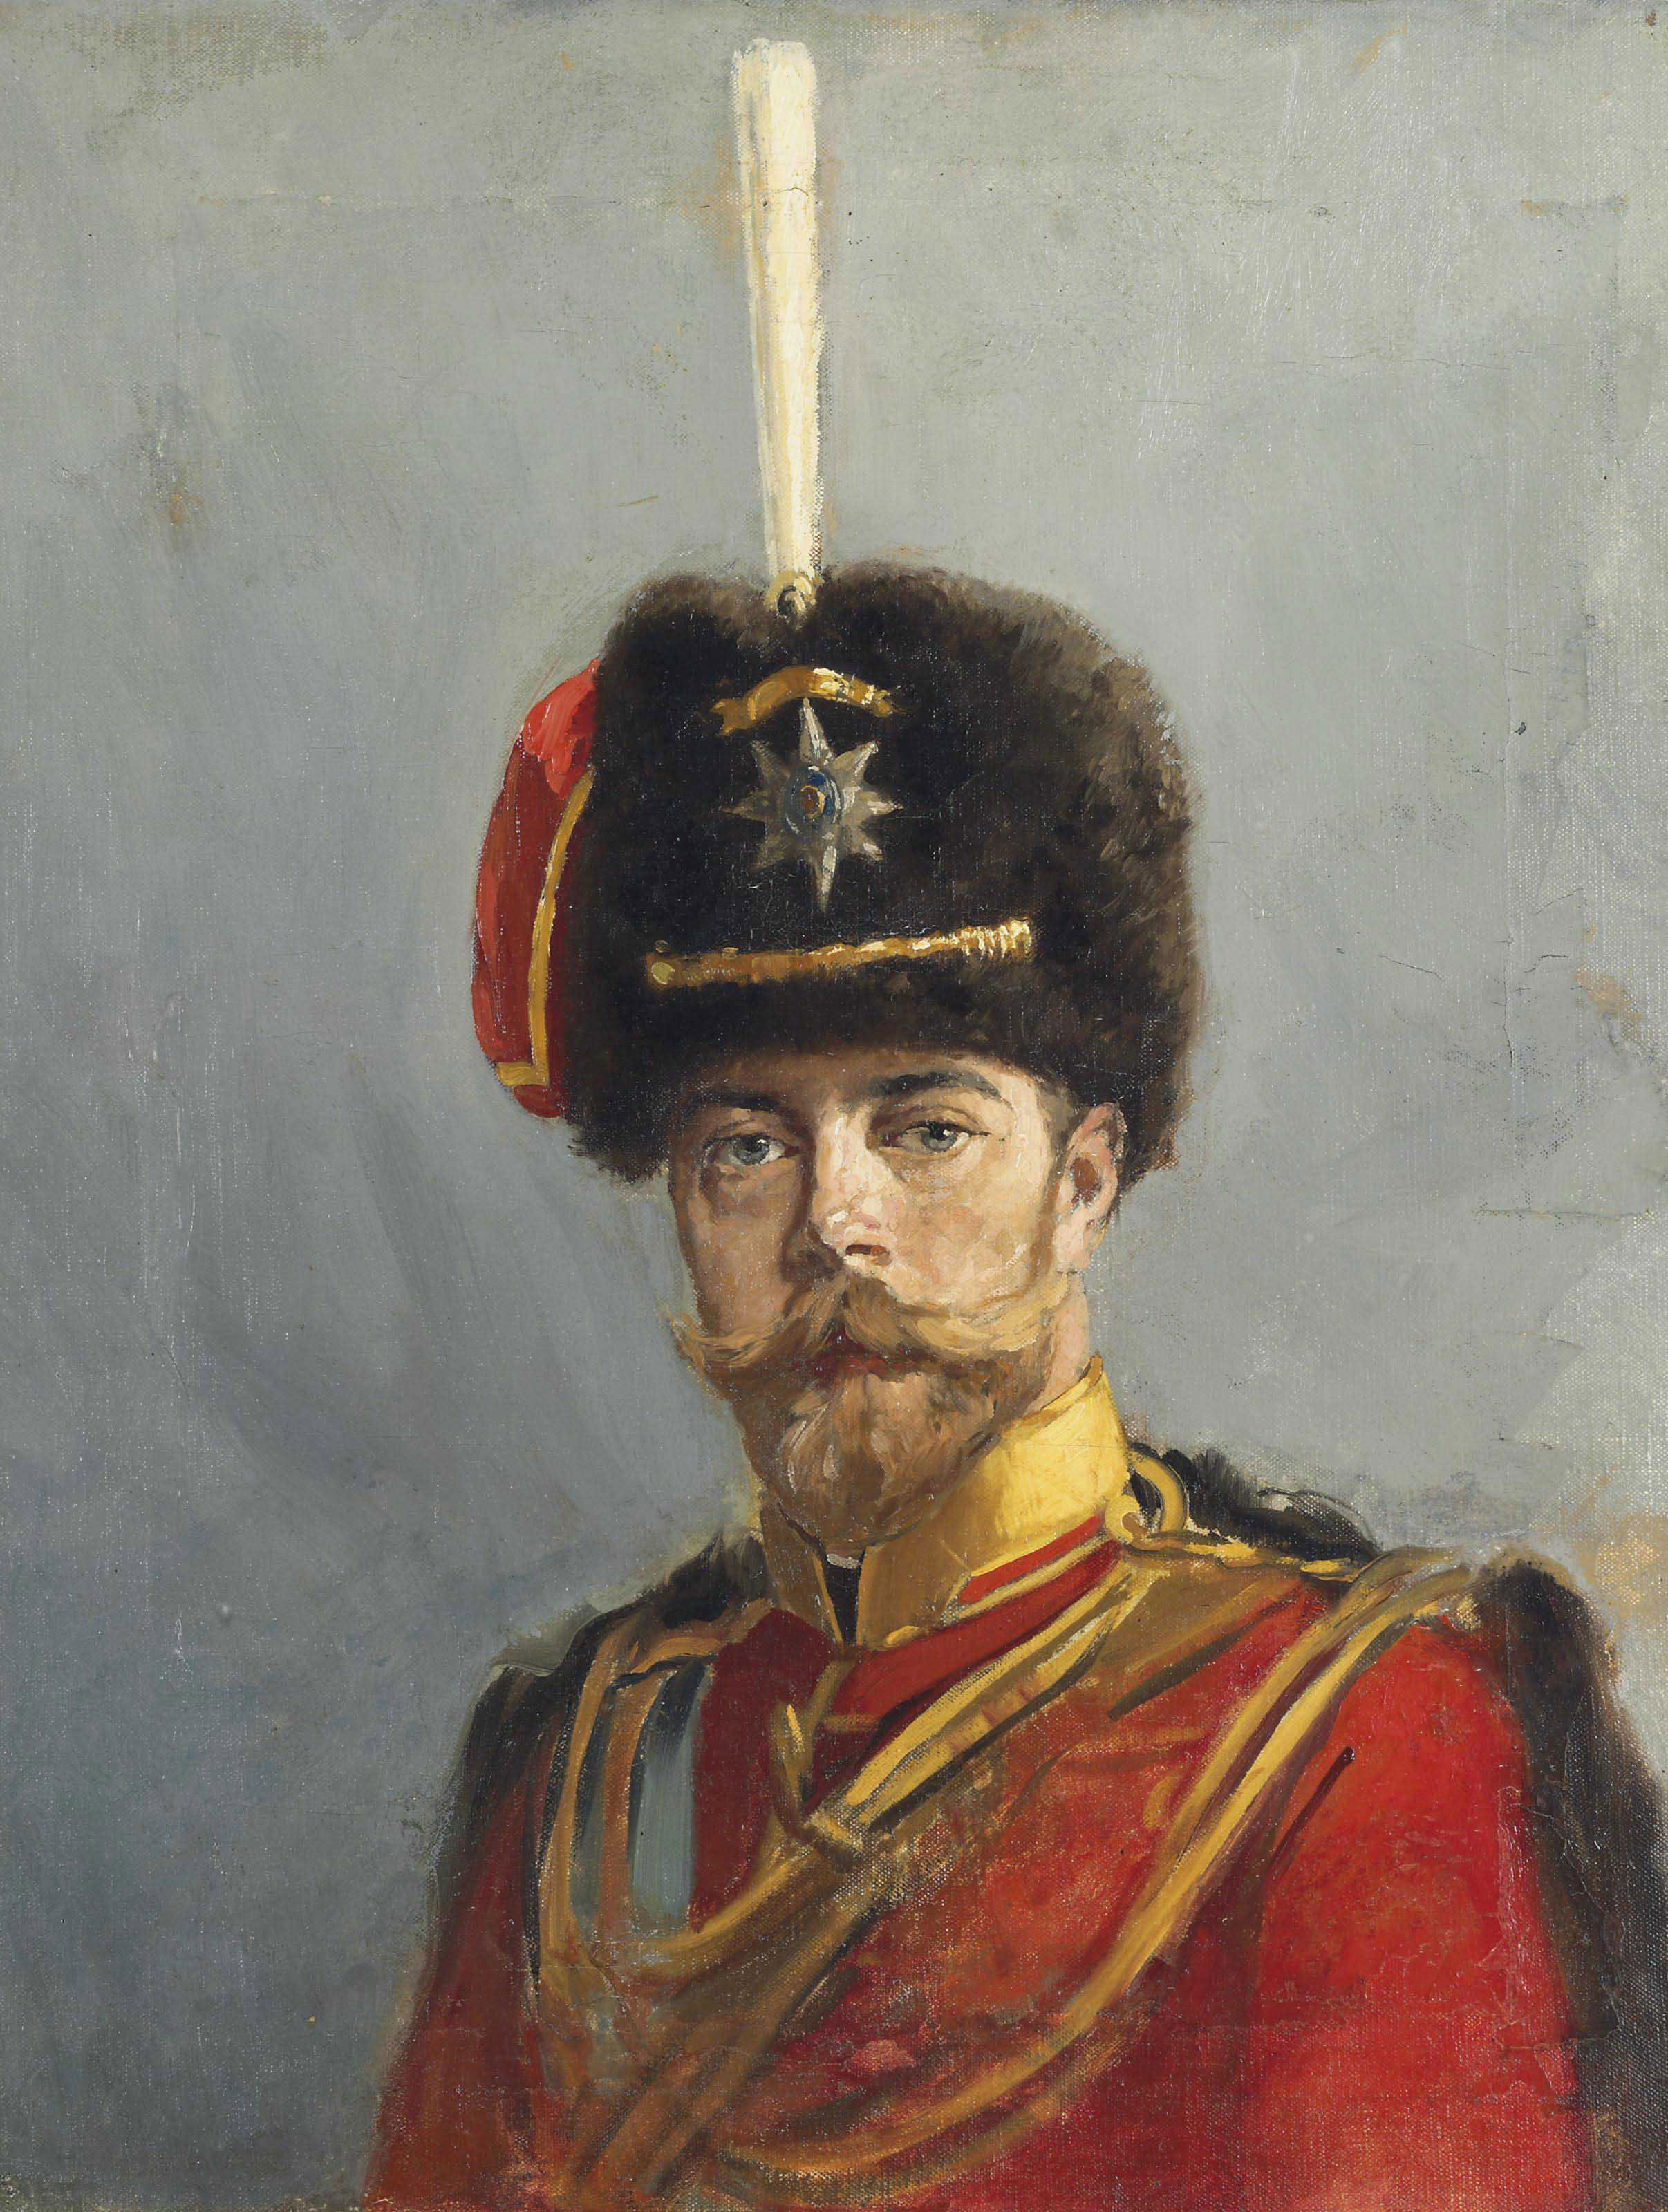 Study for a portrait of Emperor Nicholas II, Chief of the Guard Hussar Regiment